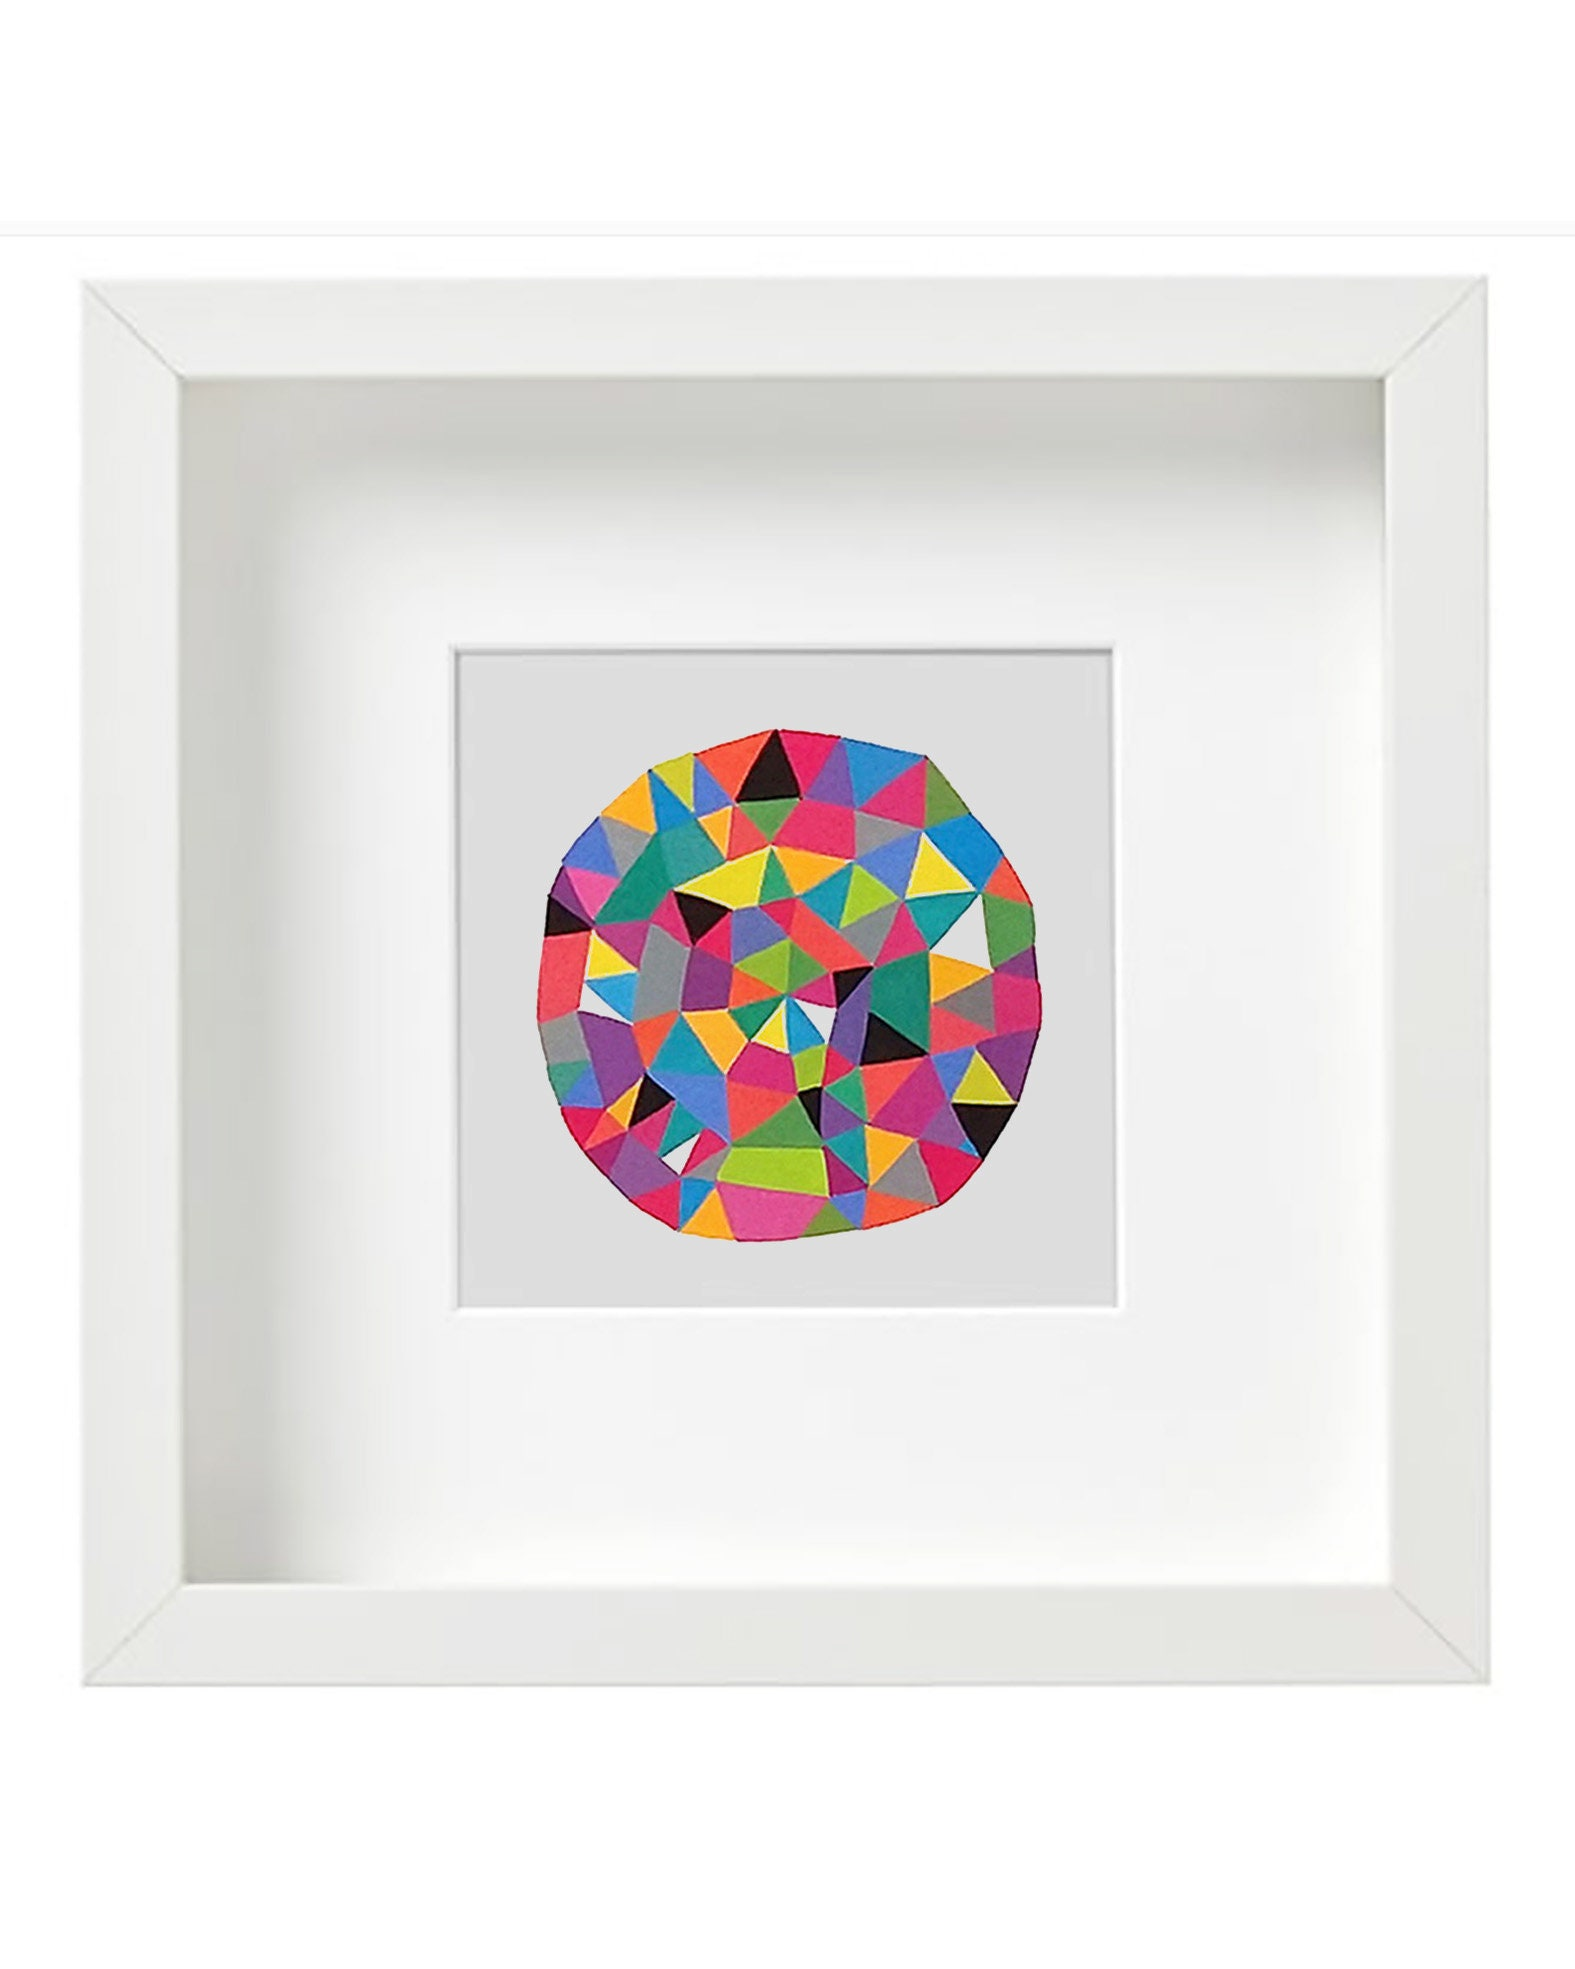 Circle_001, small square geometric illustration - product images  of